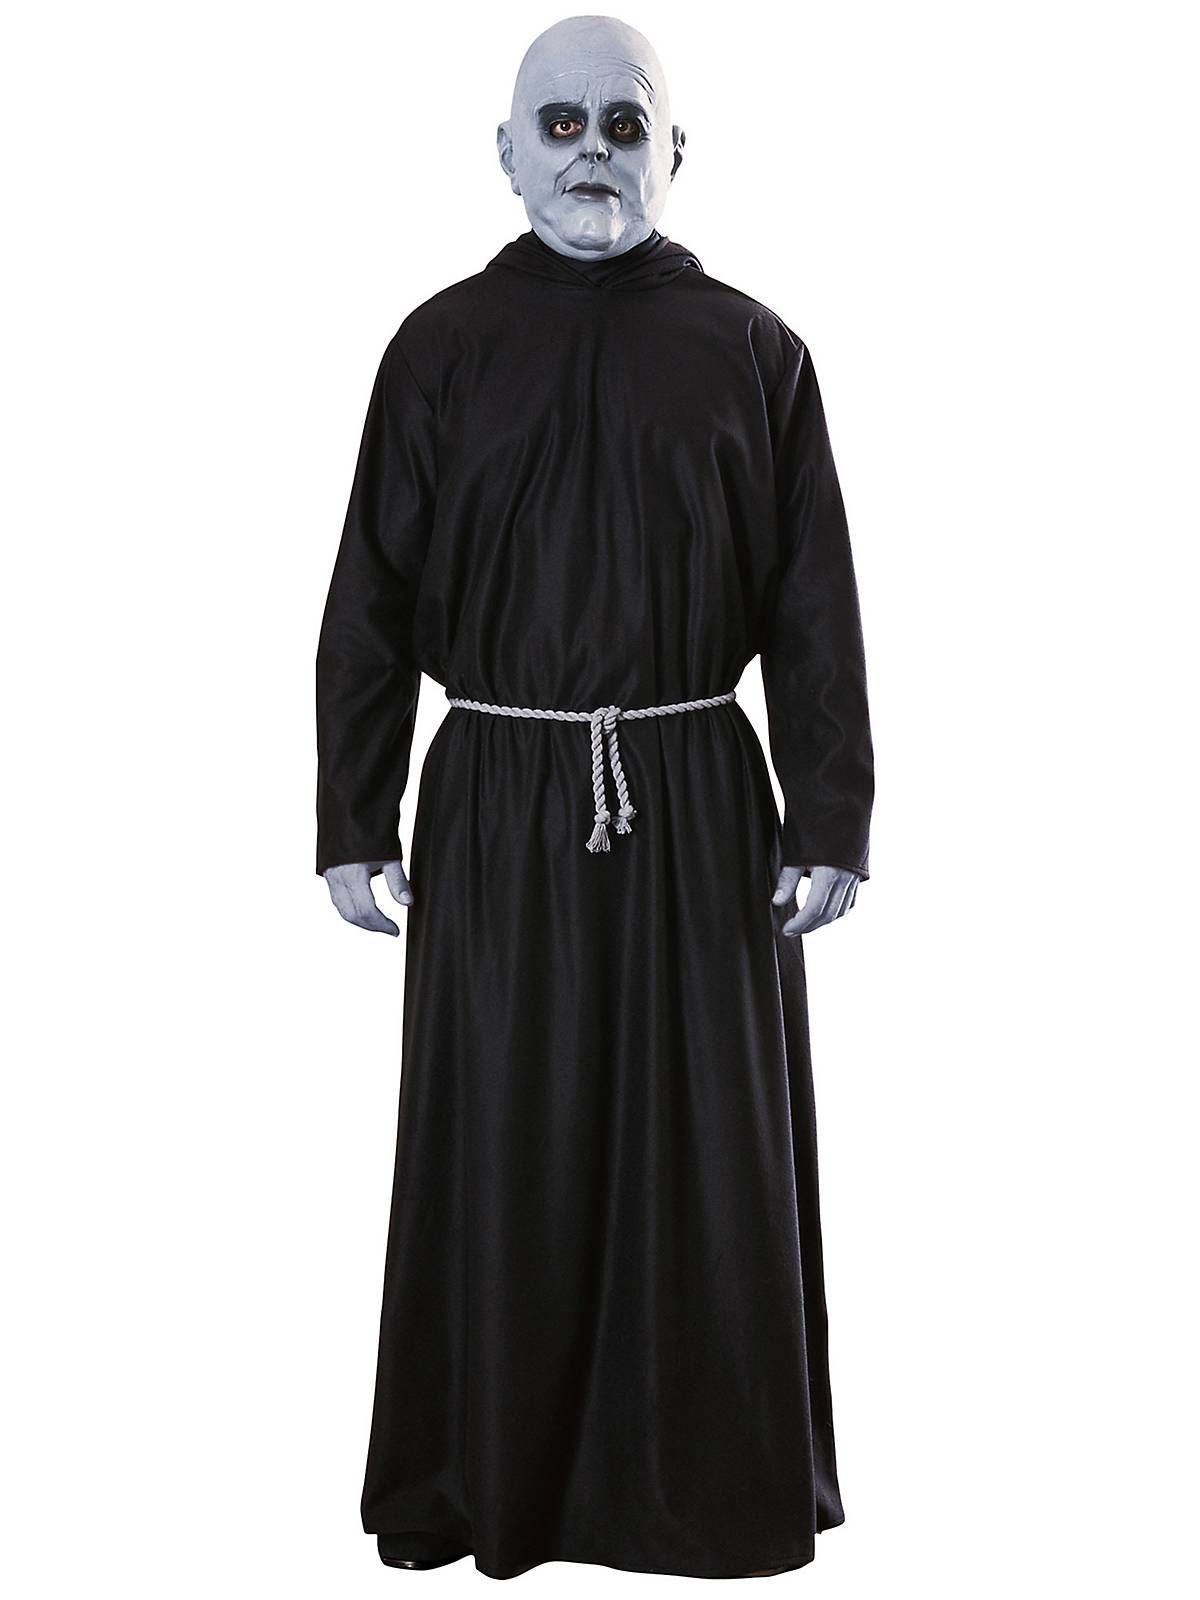 Adult Creepy Festering Uncle Robes /& Belt Halloween Family Fancy Dress Costume